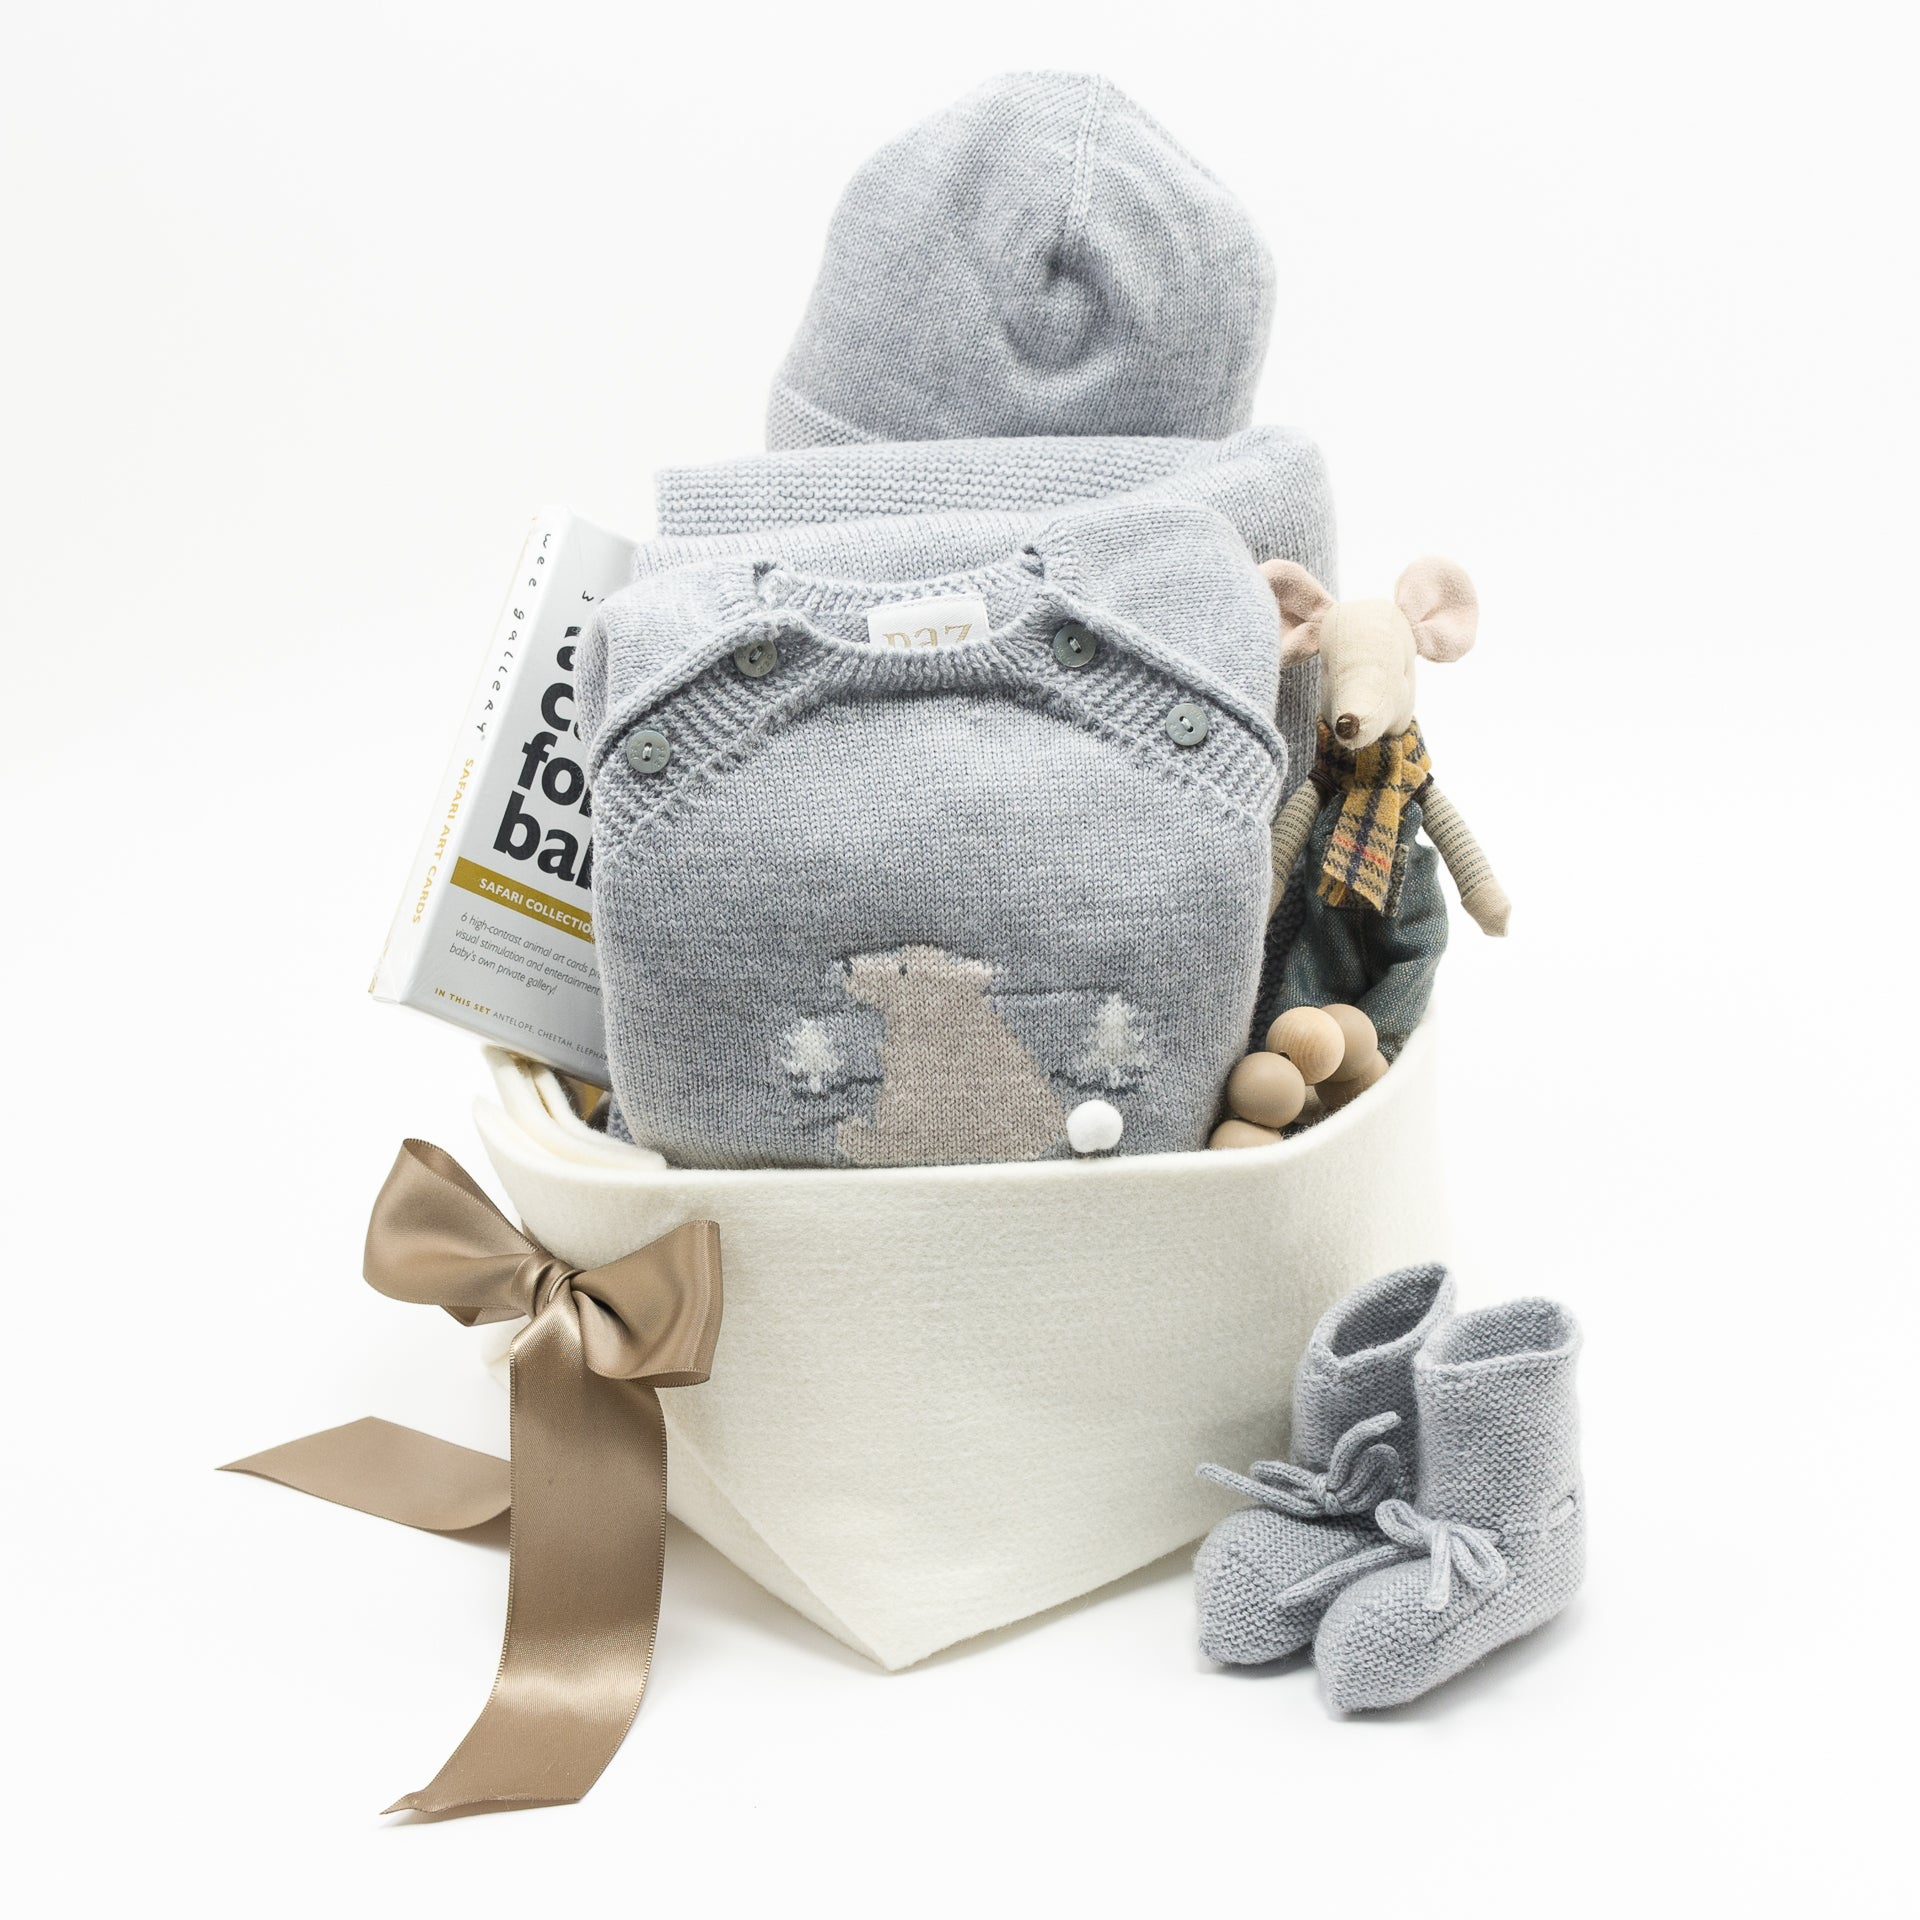 Paz Rodriguez Luxury Baby Gift Basket, perfect Corporate Baby Gift